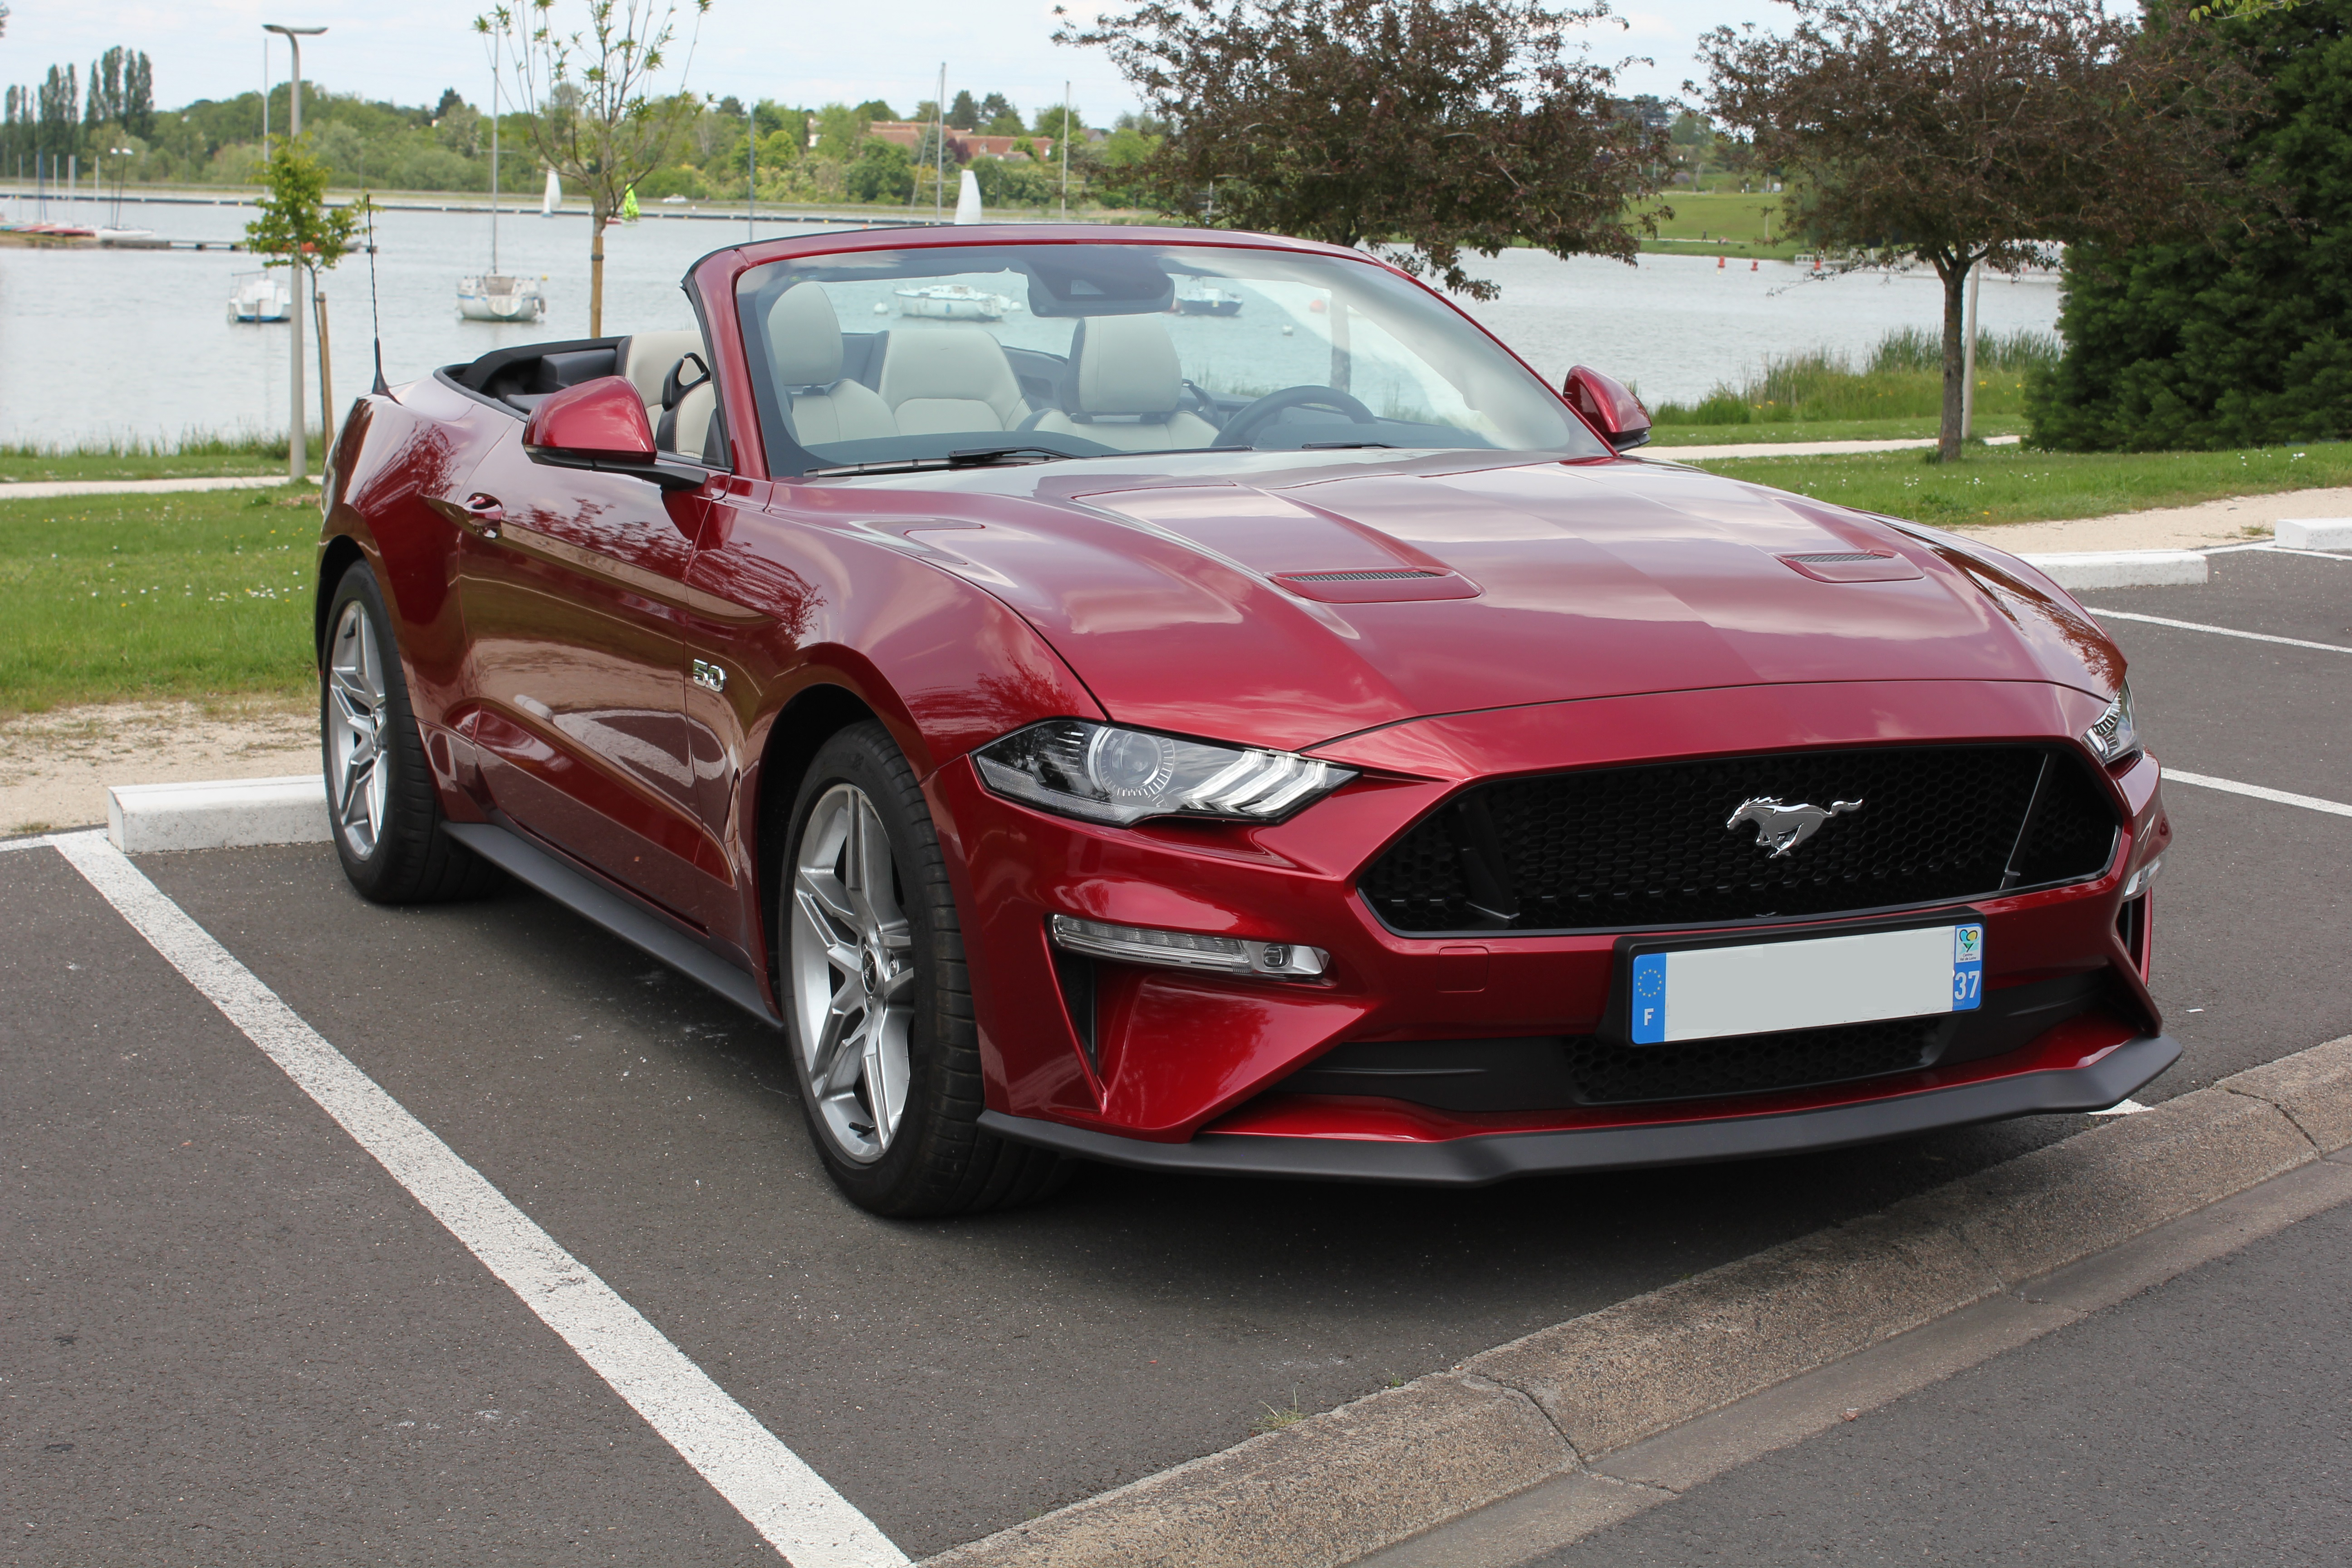 Mustang V8 Convertible BVA Rouge Candy